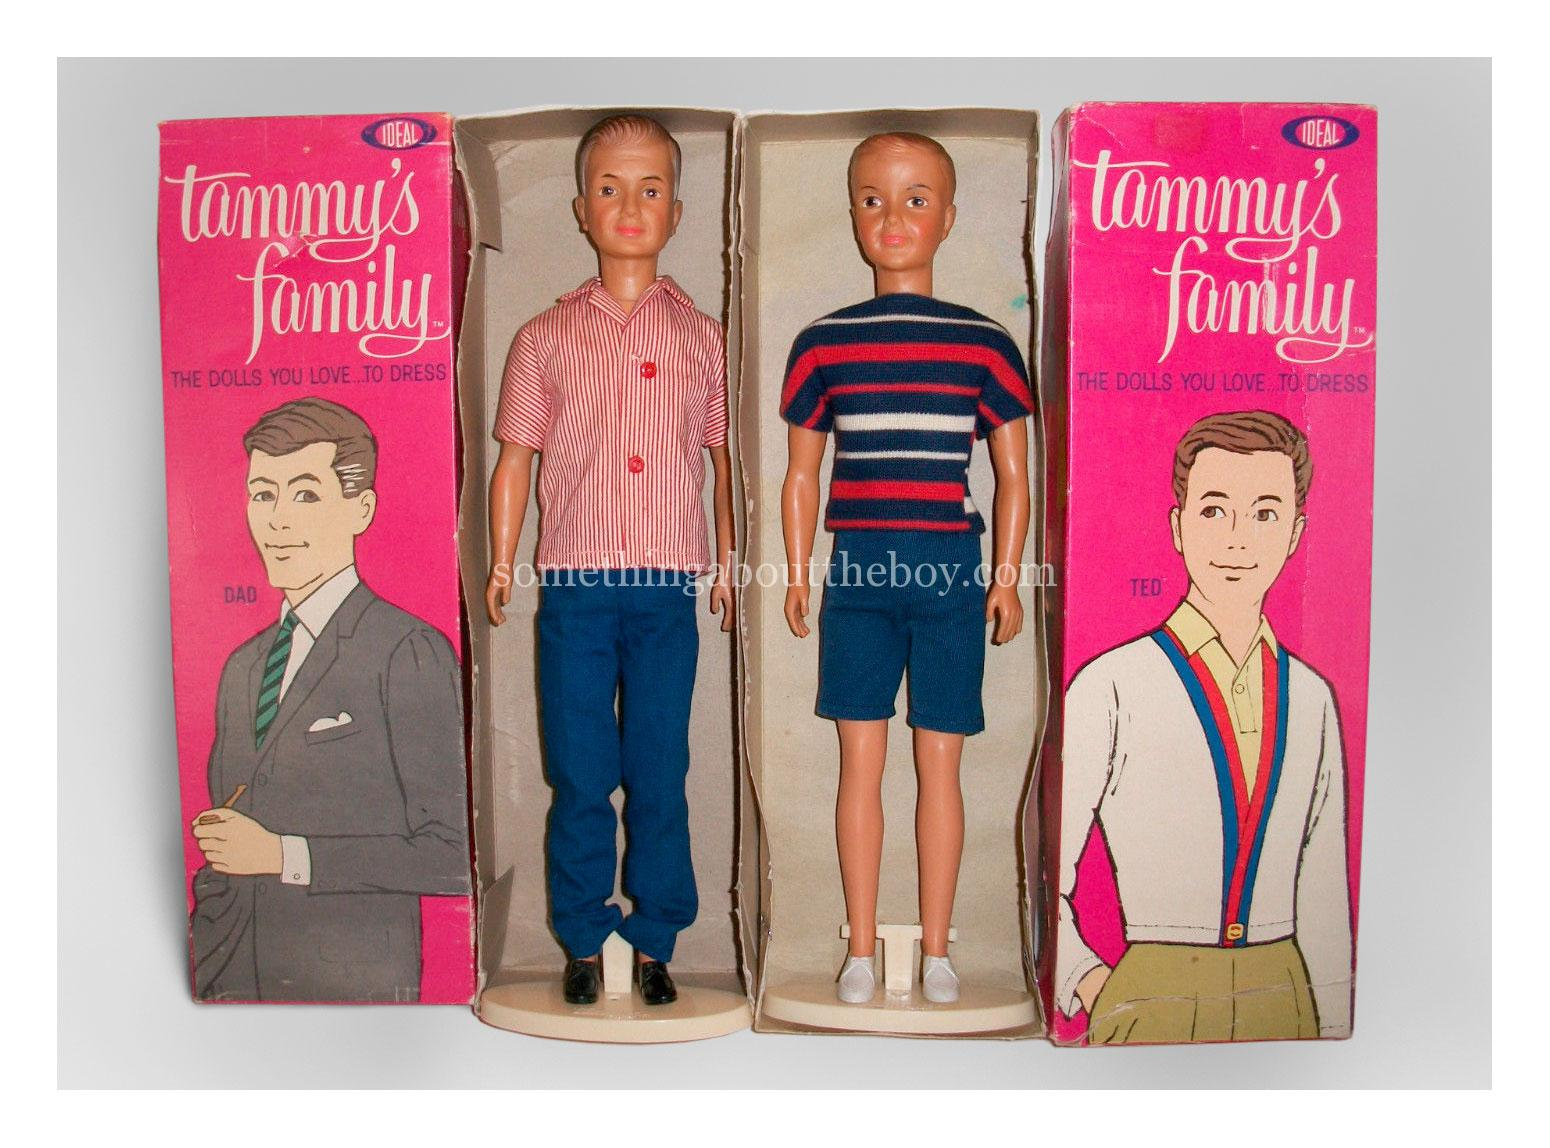 Tammy's Family Dad and Ted dolls in original packaging